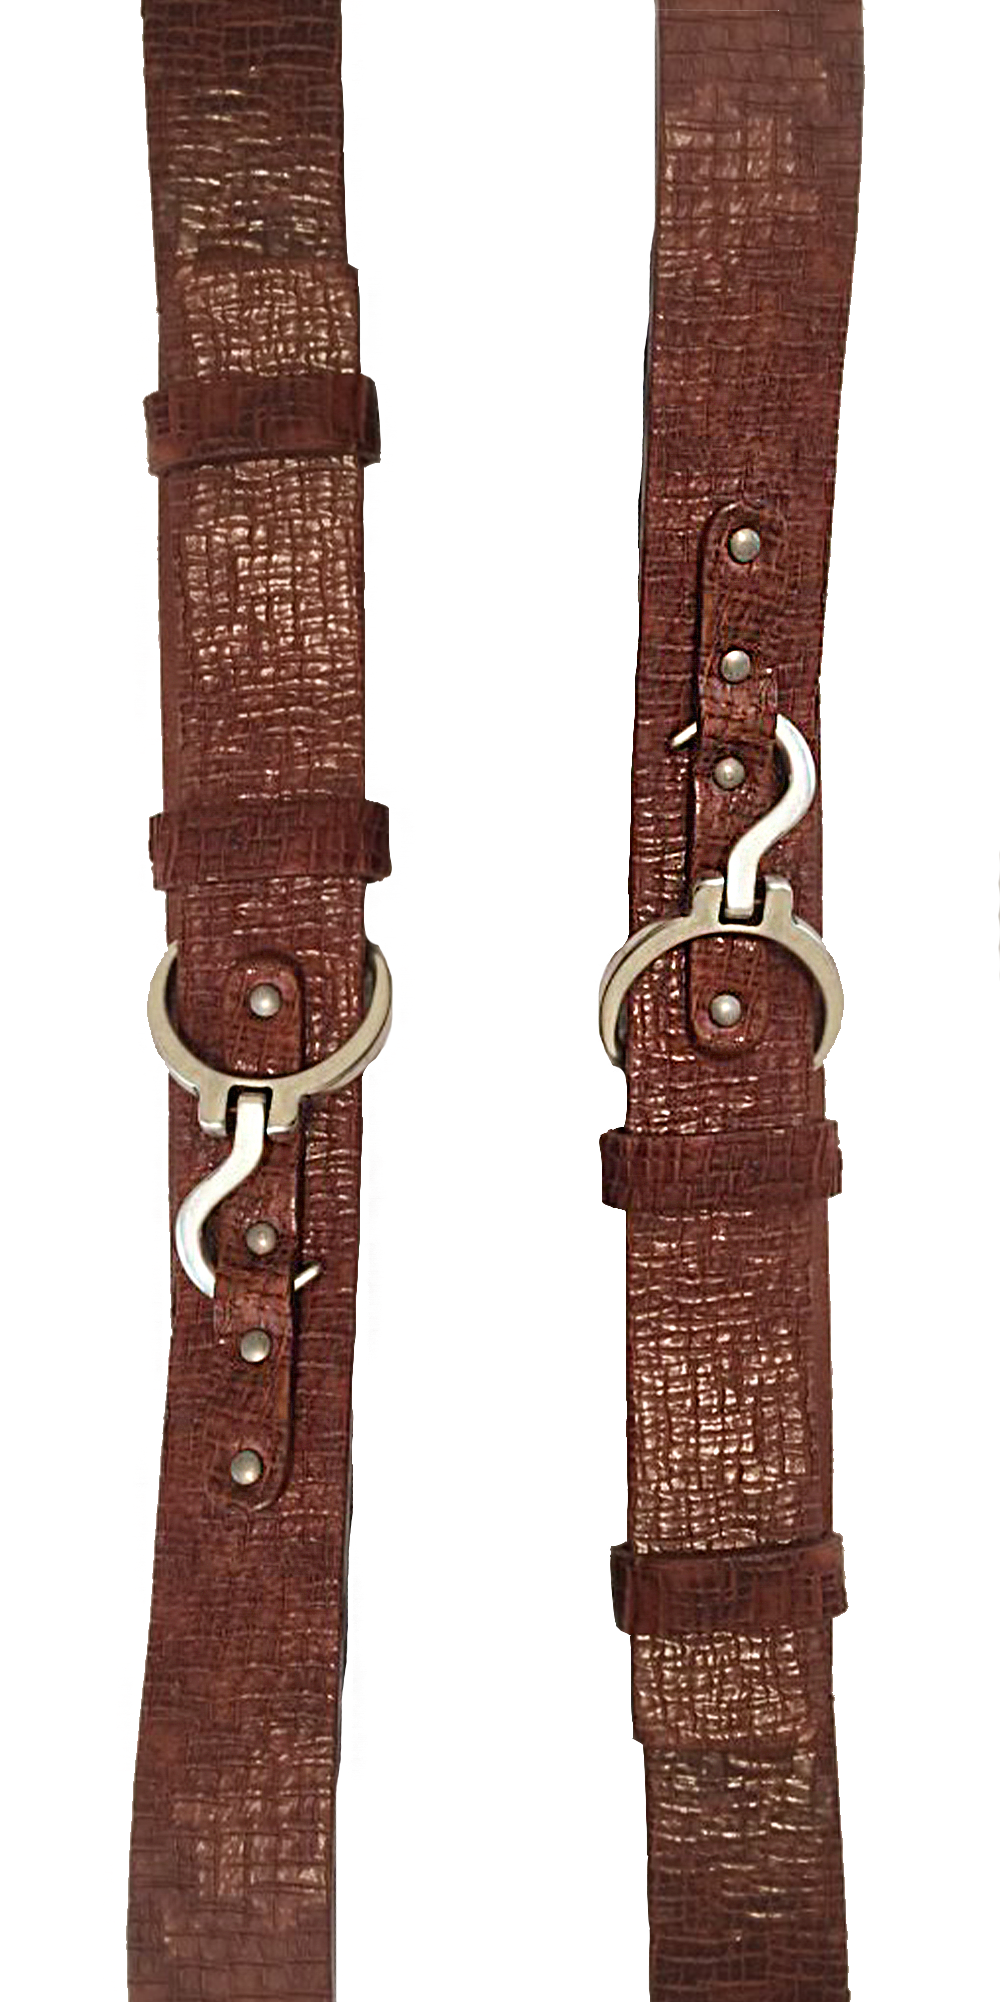 Croc Belt with Hook - Cognac-Sea Biscuit Del Mar